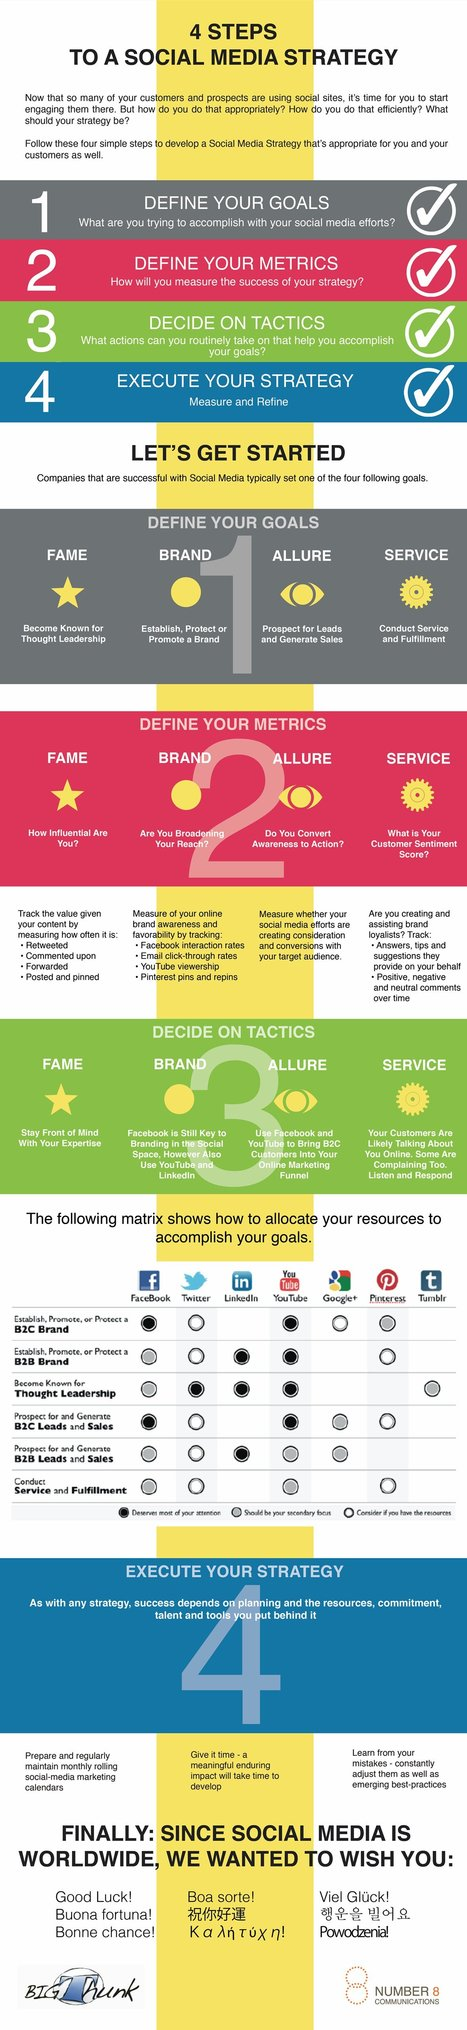 Infographic: The 4 Steps to Social Media Marketing | Digital Communication and Innovations | Scoop.it